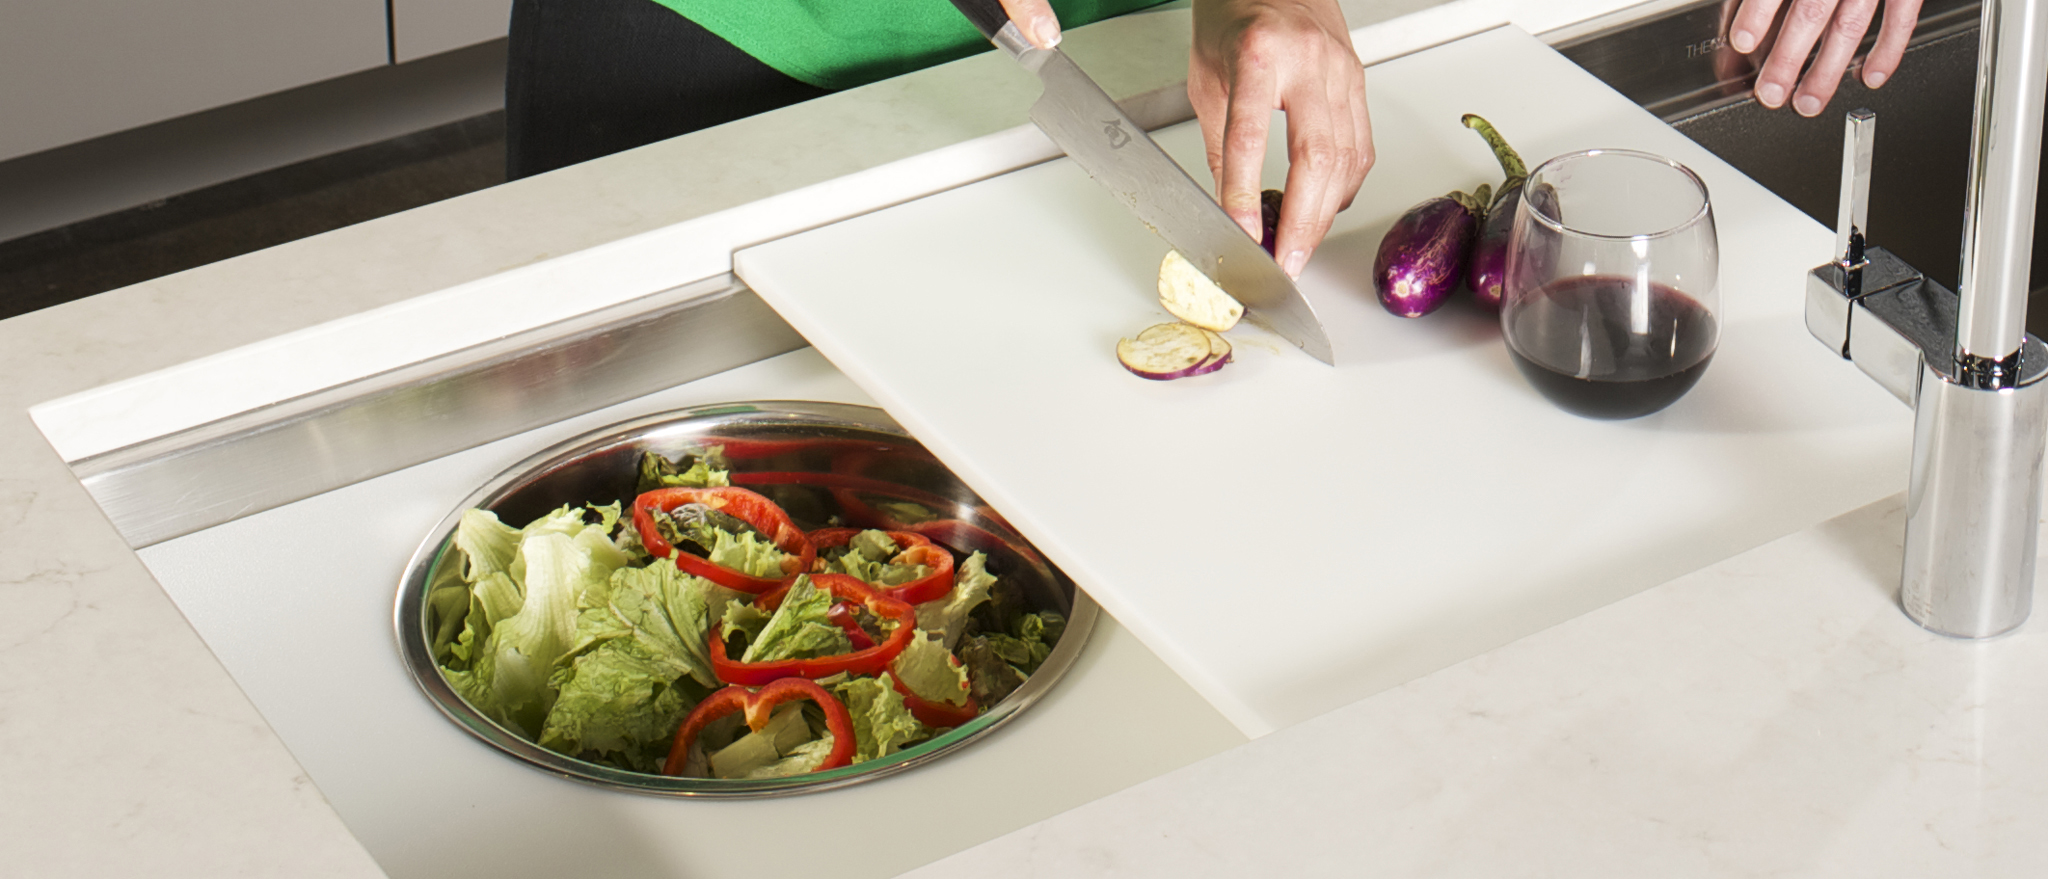 9/25/14 3:42:50 PM -- Kitchen interiors of The Galley sink at Metro Appliance for Kitchen Ideas/The Galley  Photo by Shane Bevel